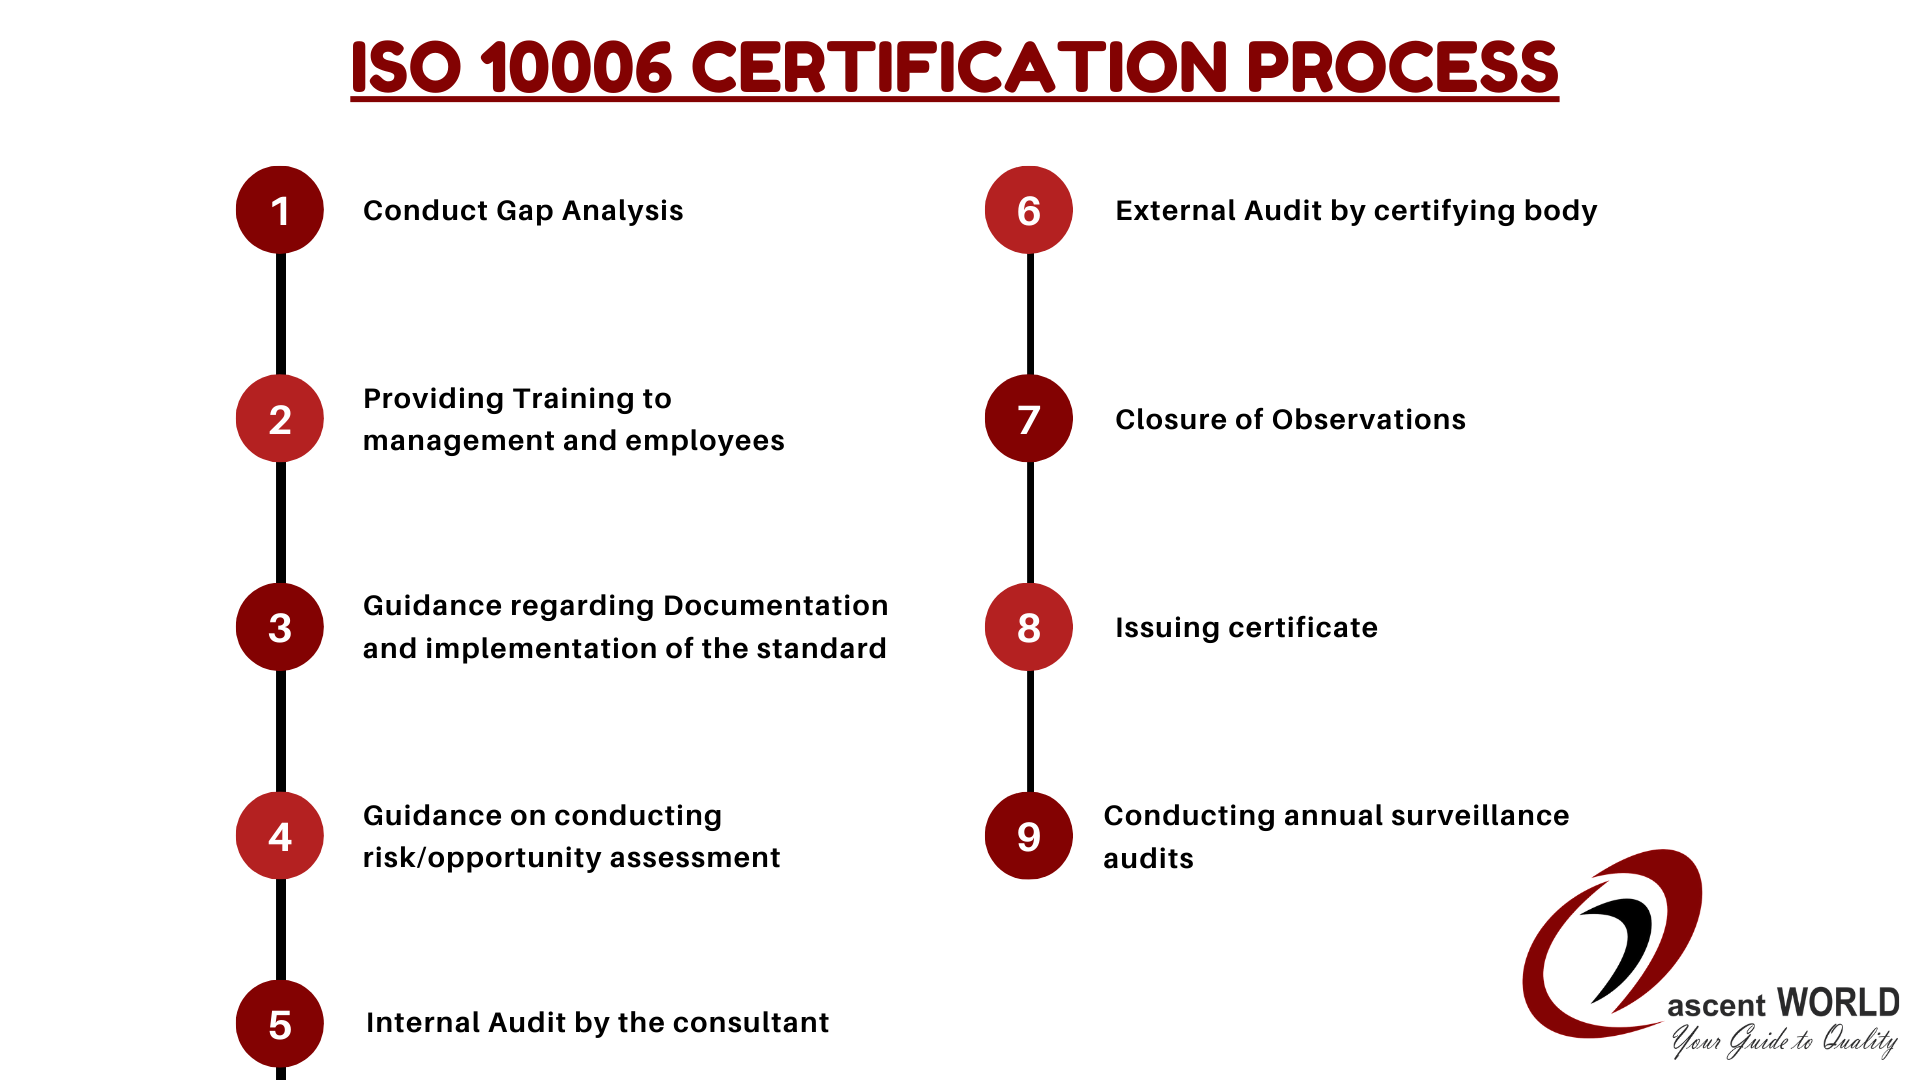 ISO 10006 Certification process